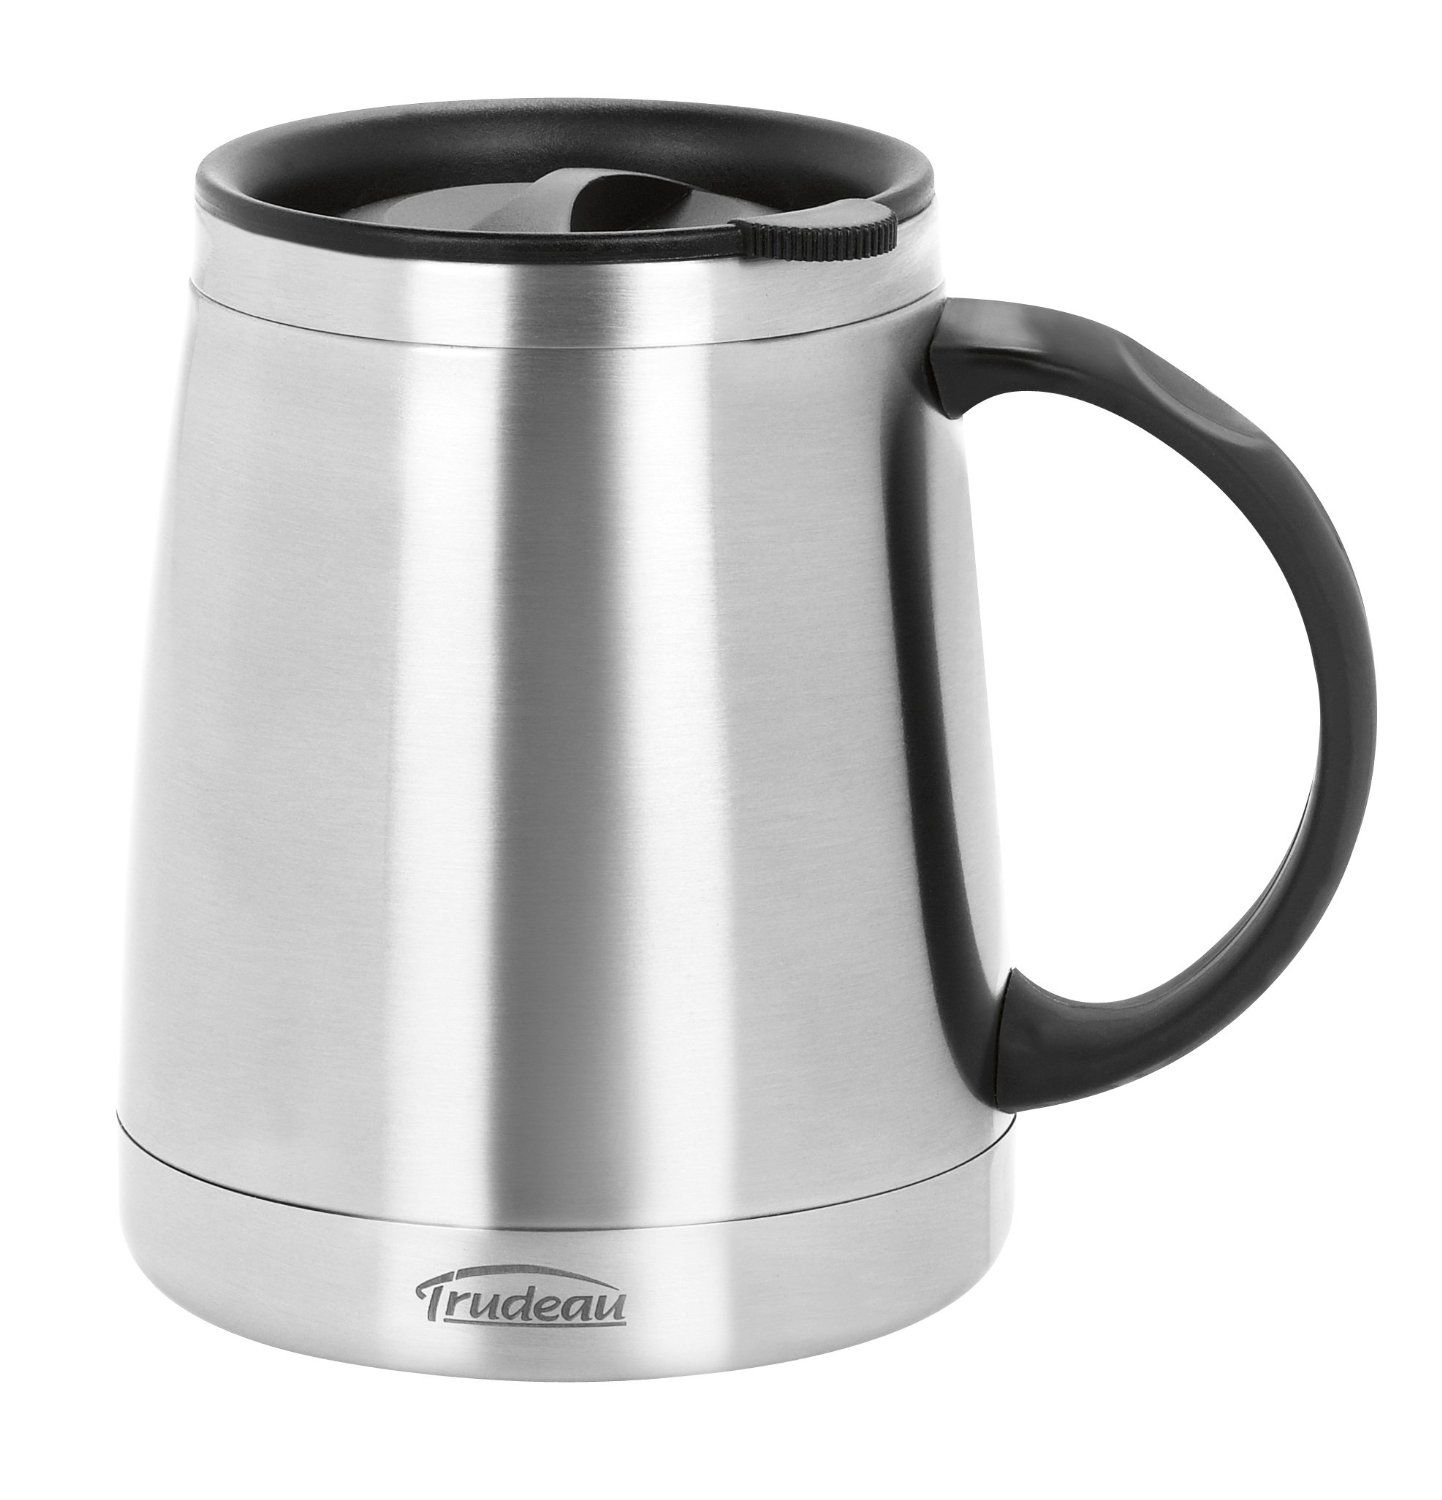 Stainless Steel Trudeau Donoti Wide Bottom Desk Mug